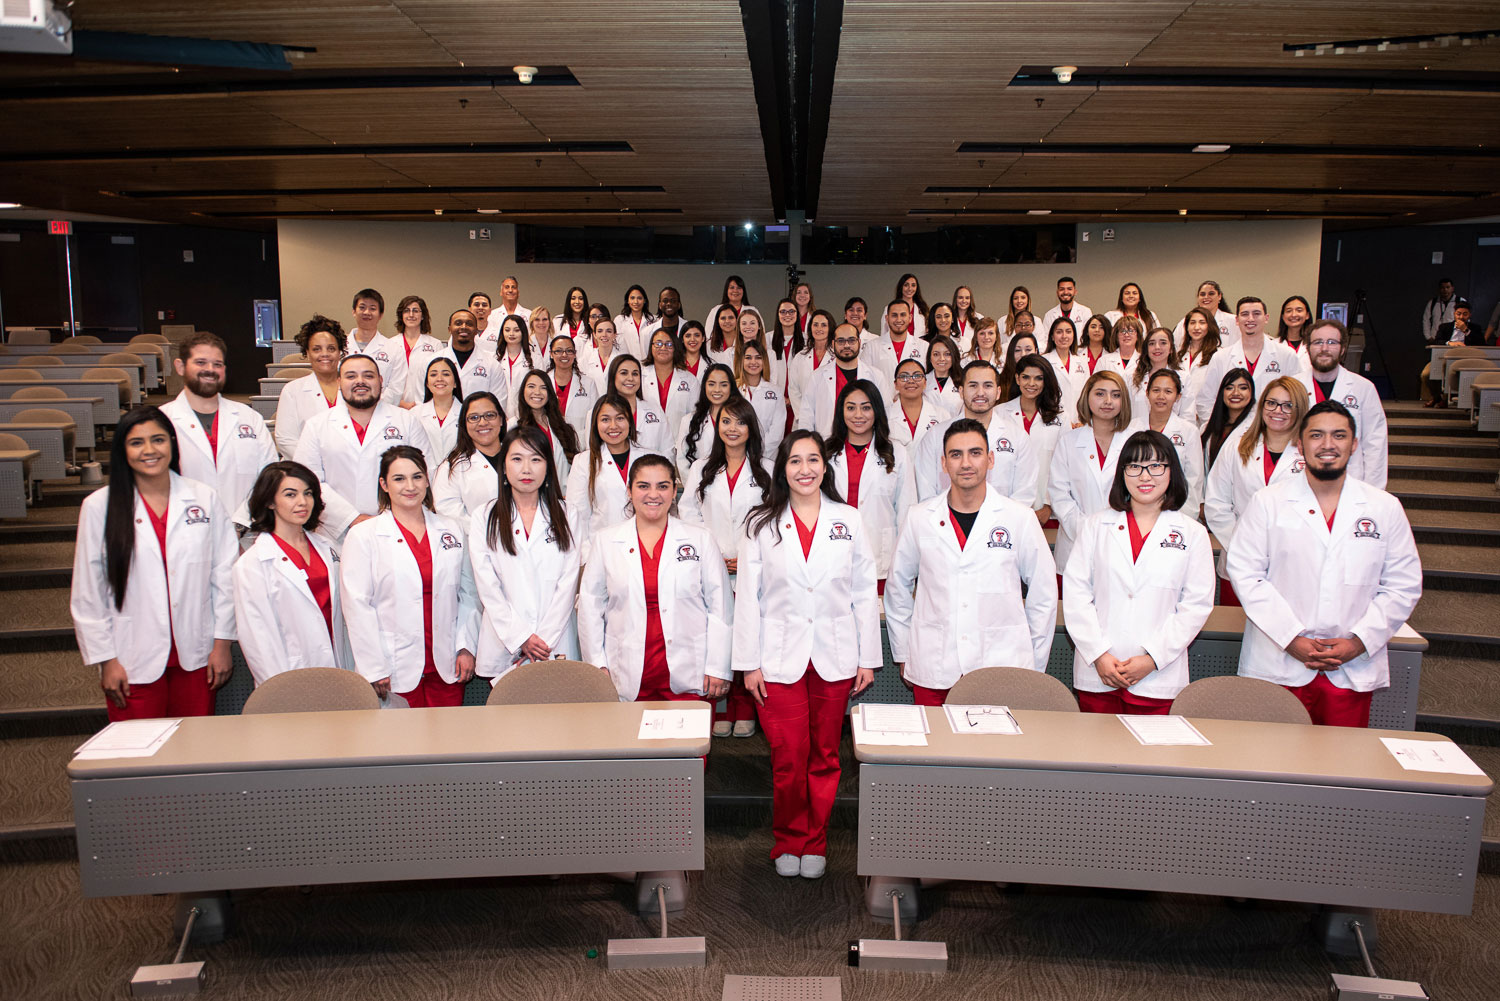 The GGHSON Class of 2020 received their first white coats during a ceremony Friday, Jan. 18, at the Misenhimer Auditorium.